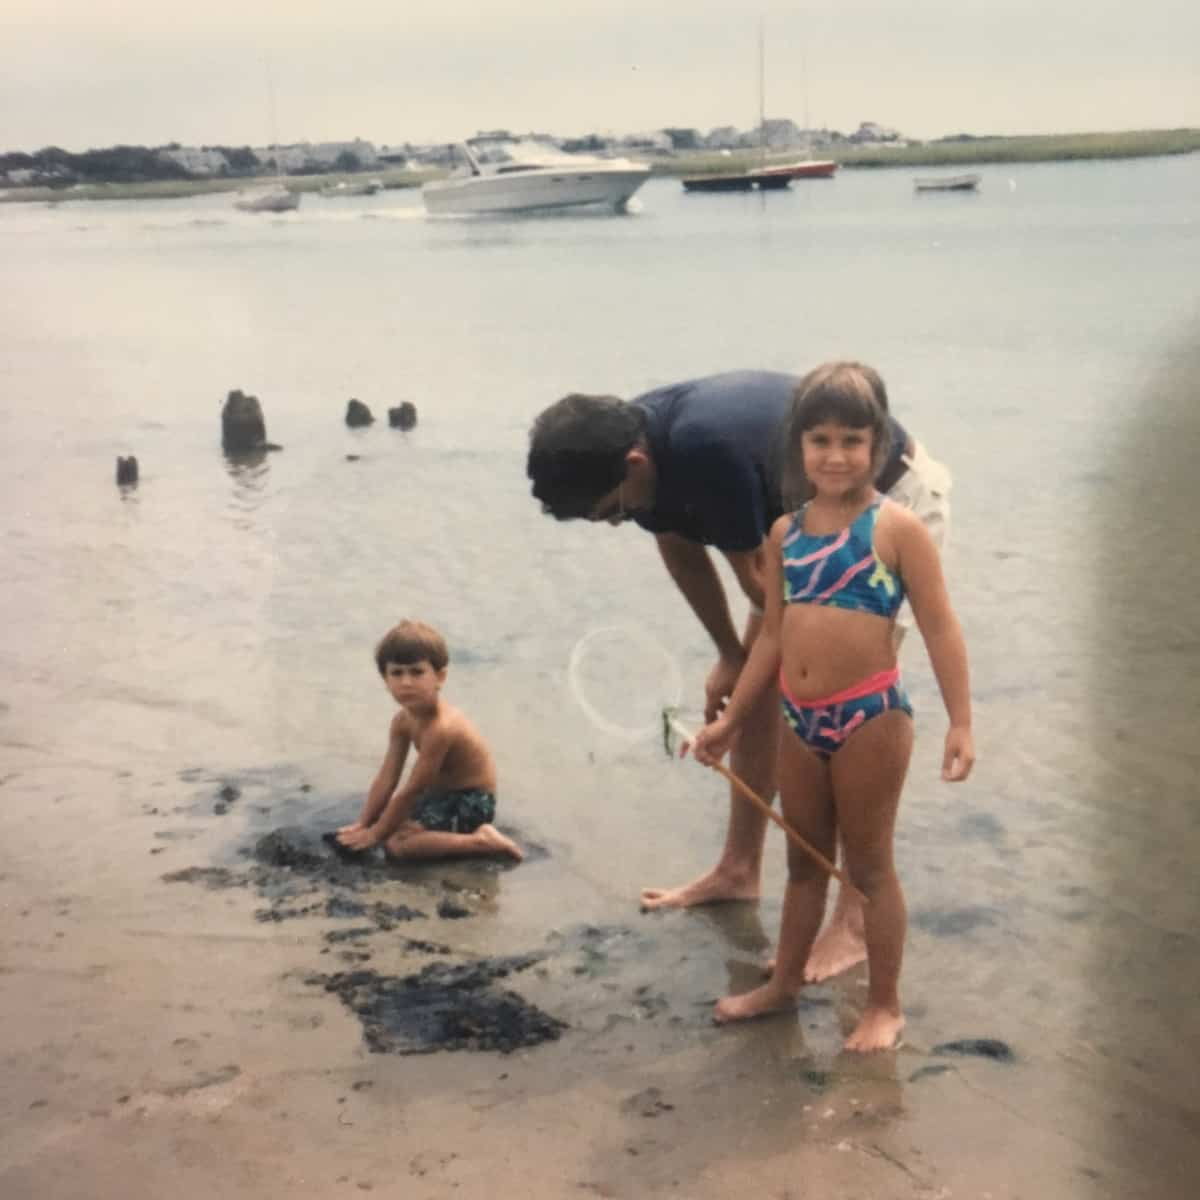 my young family at the beach in Cape Cod inspired the recipe for Lobster Corn Chowdah Cakes